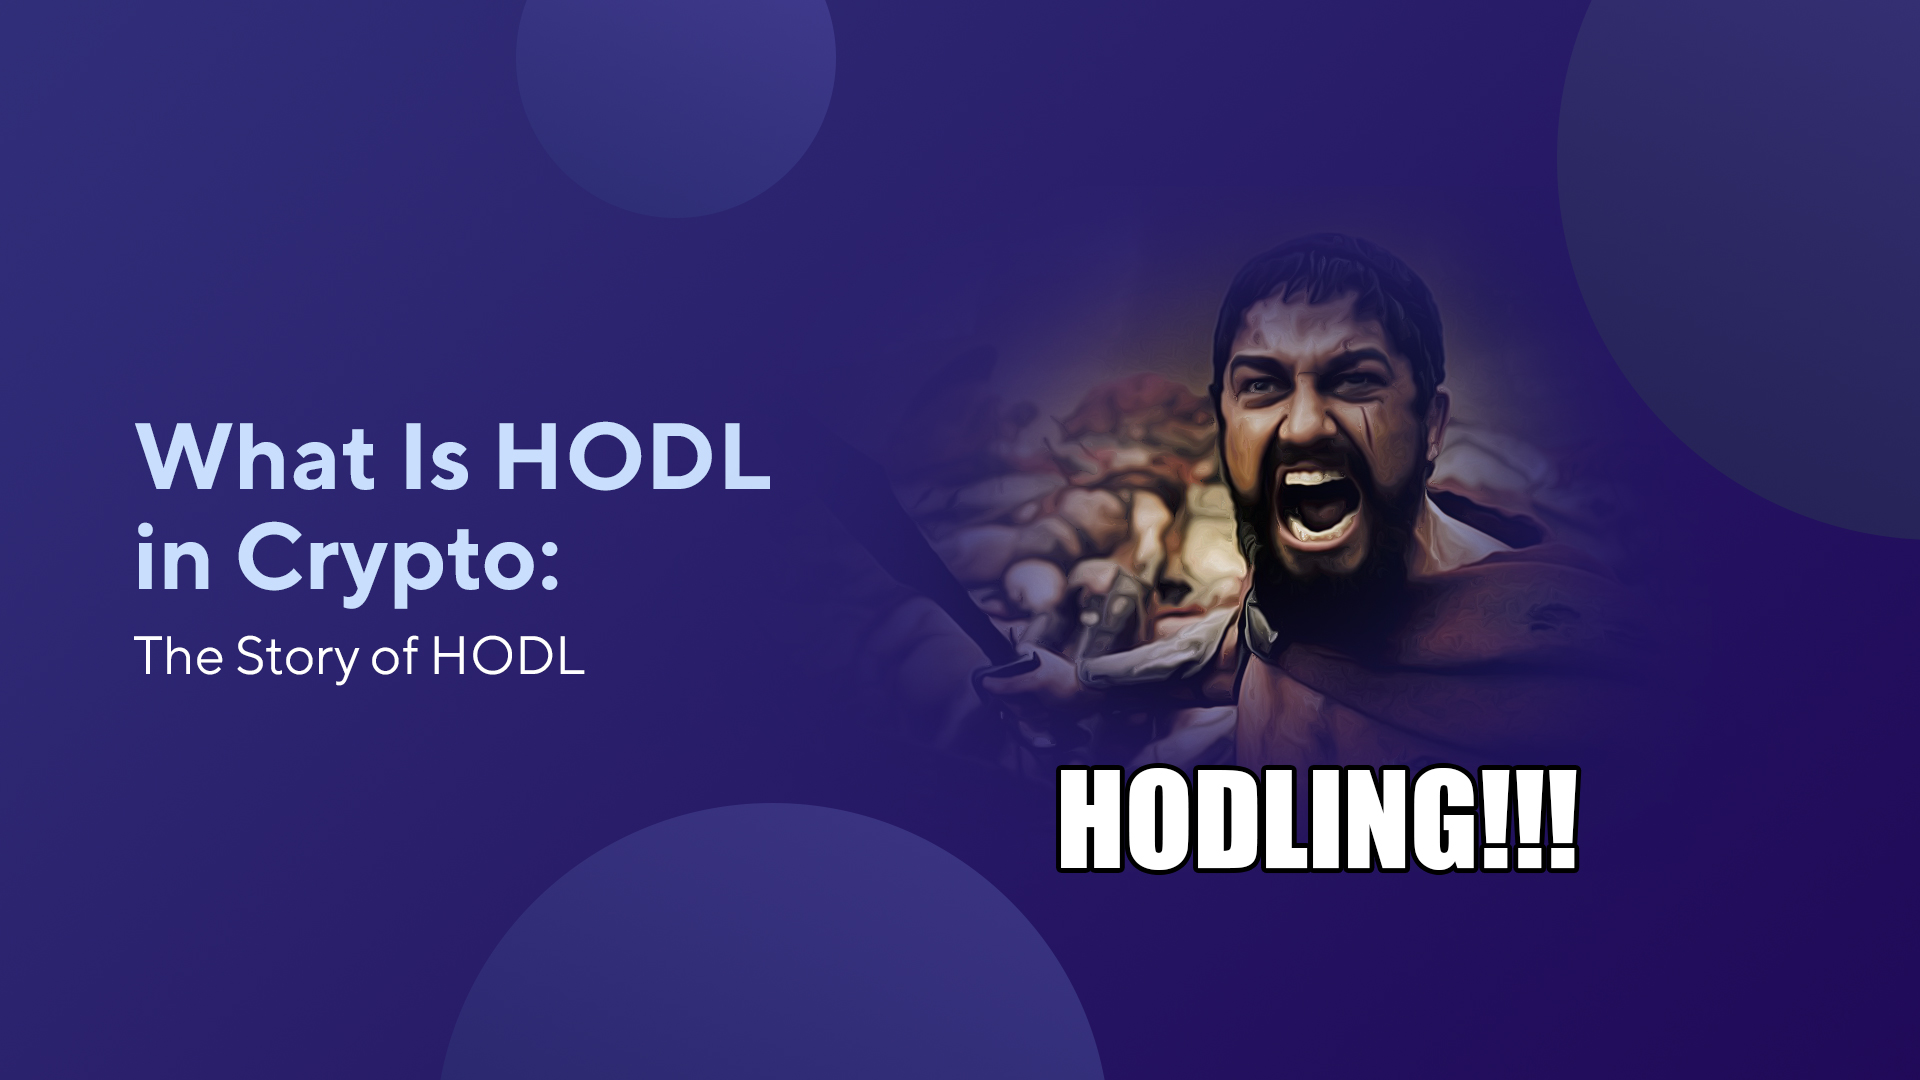 What Is HODL in Crypto: The Story of HODL